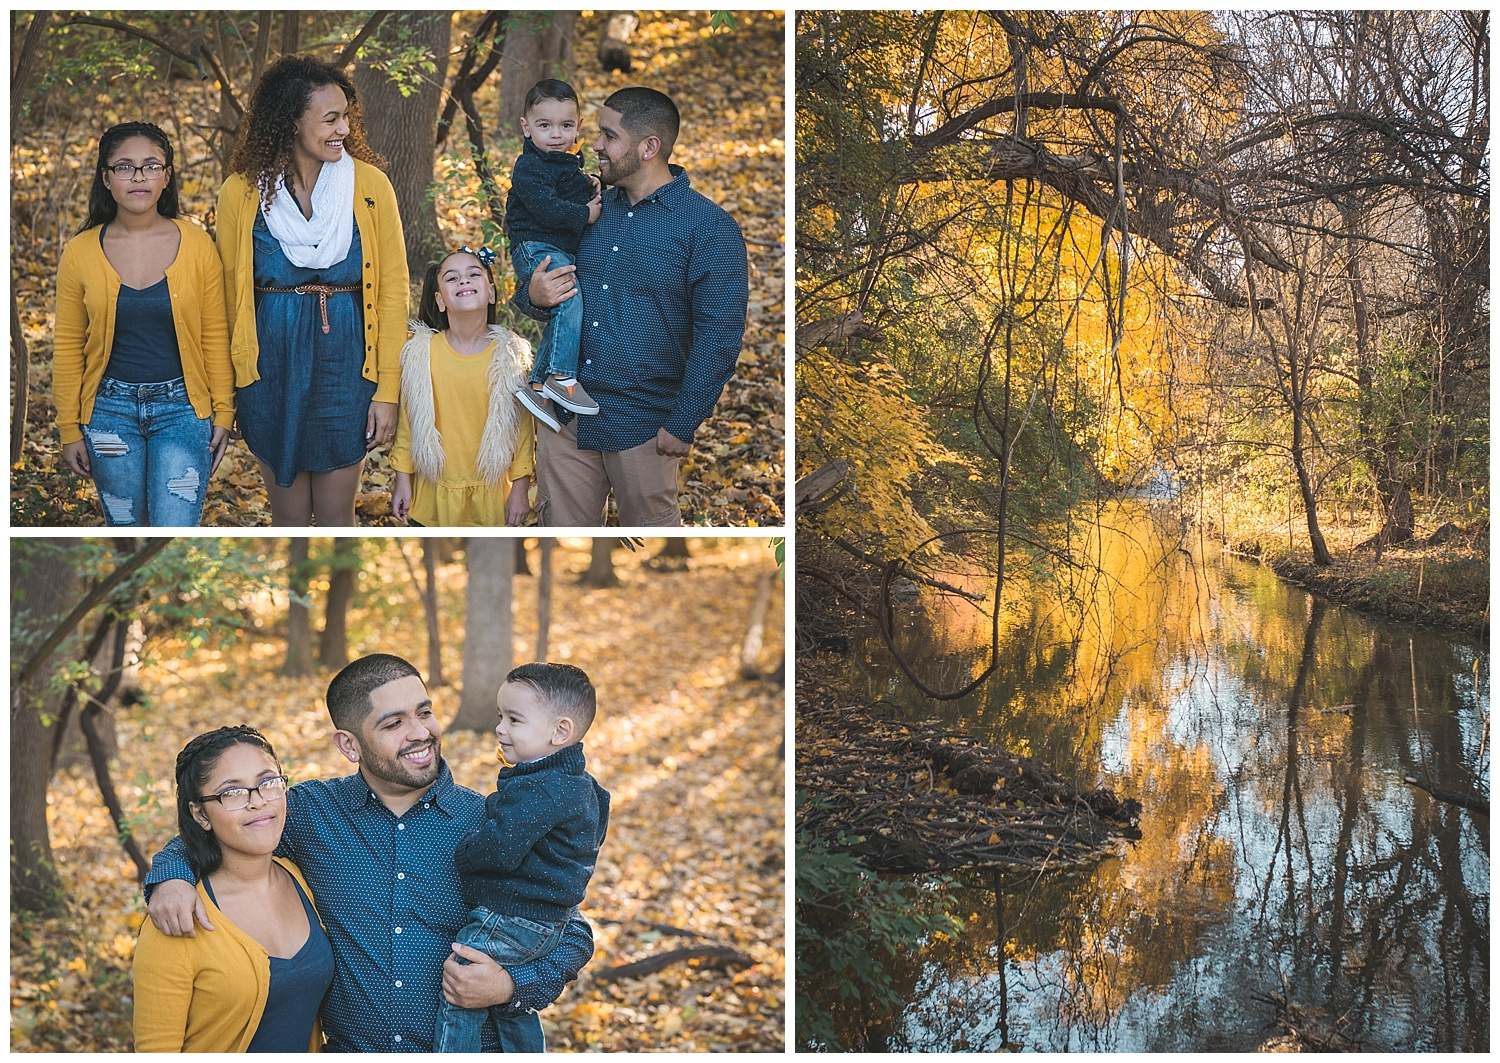 Harley School Family session - Rochester NY - Whimsy roots 4.jpg